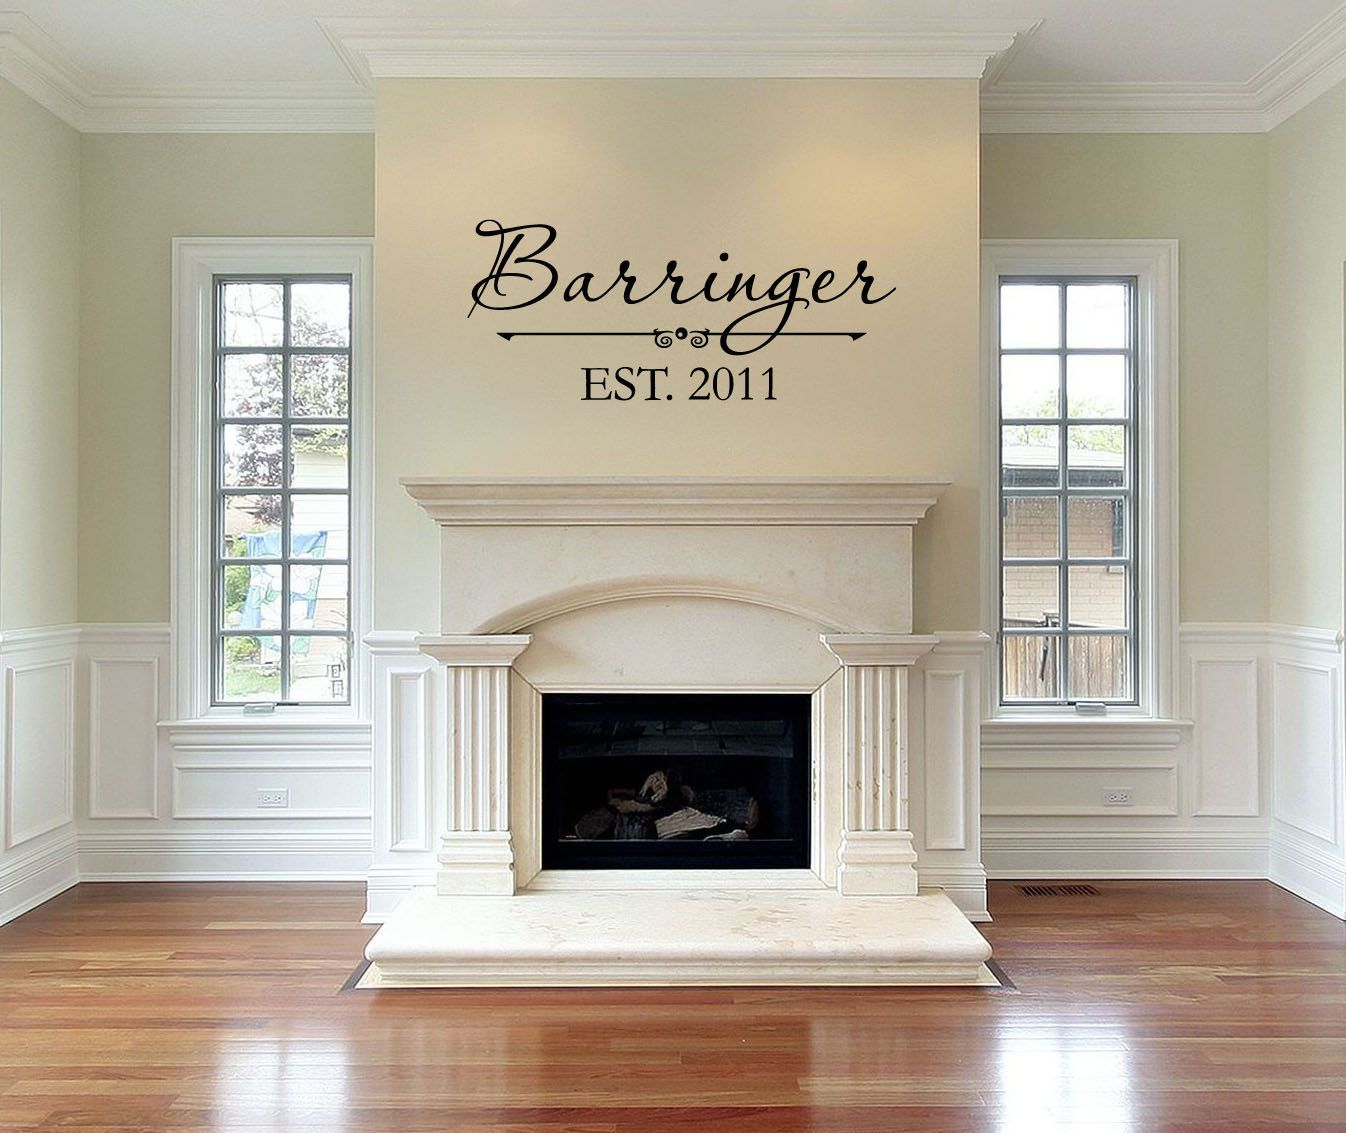 Fireplace Decal Personalized Family Last Name Vinyl Wall Decal With Date